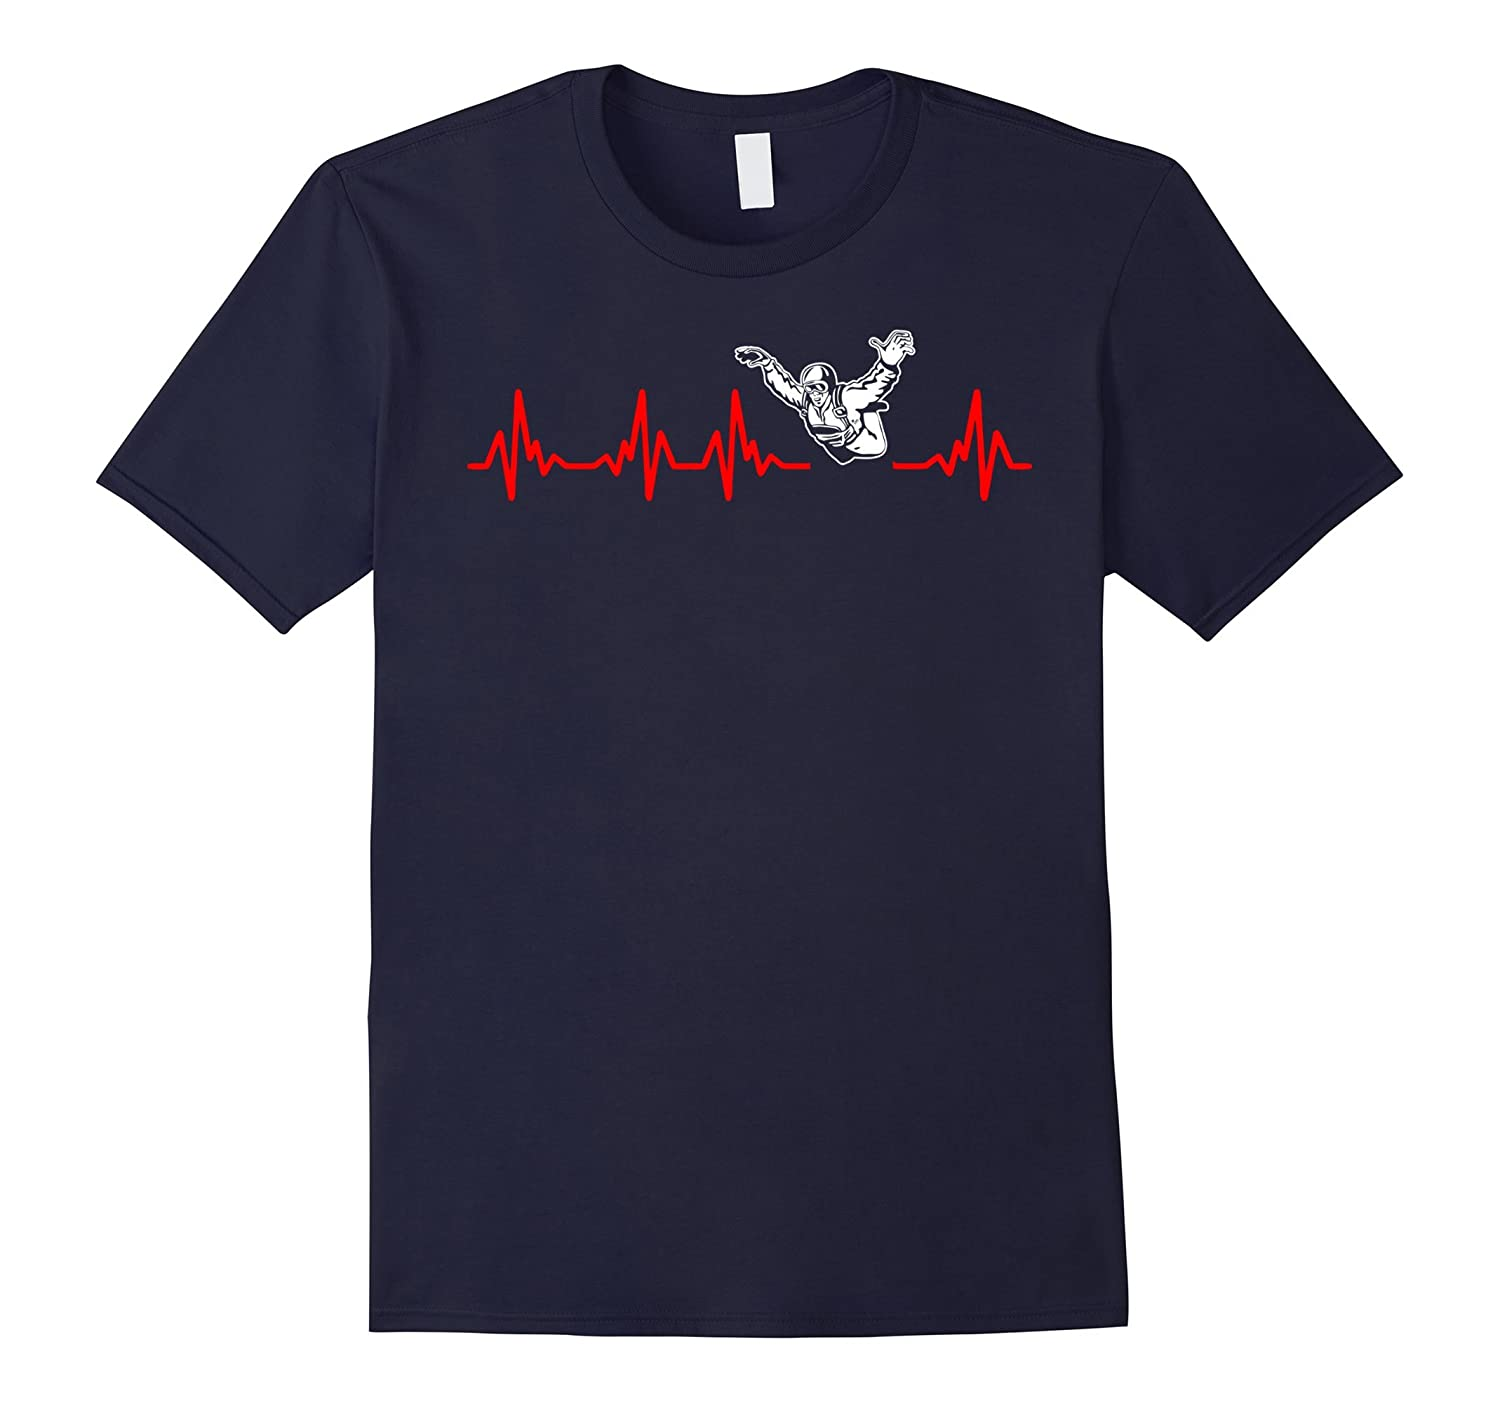 Heartbeat Skydiving Outdoors Sports Tshirt-TH